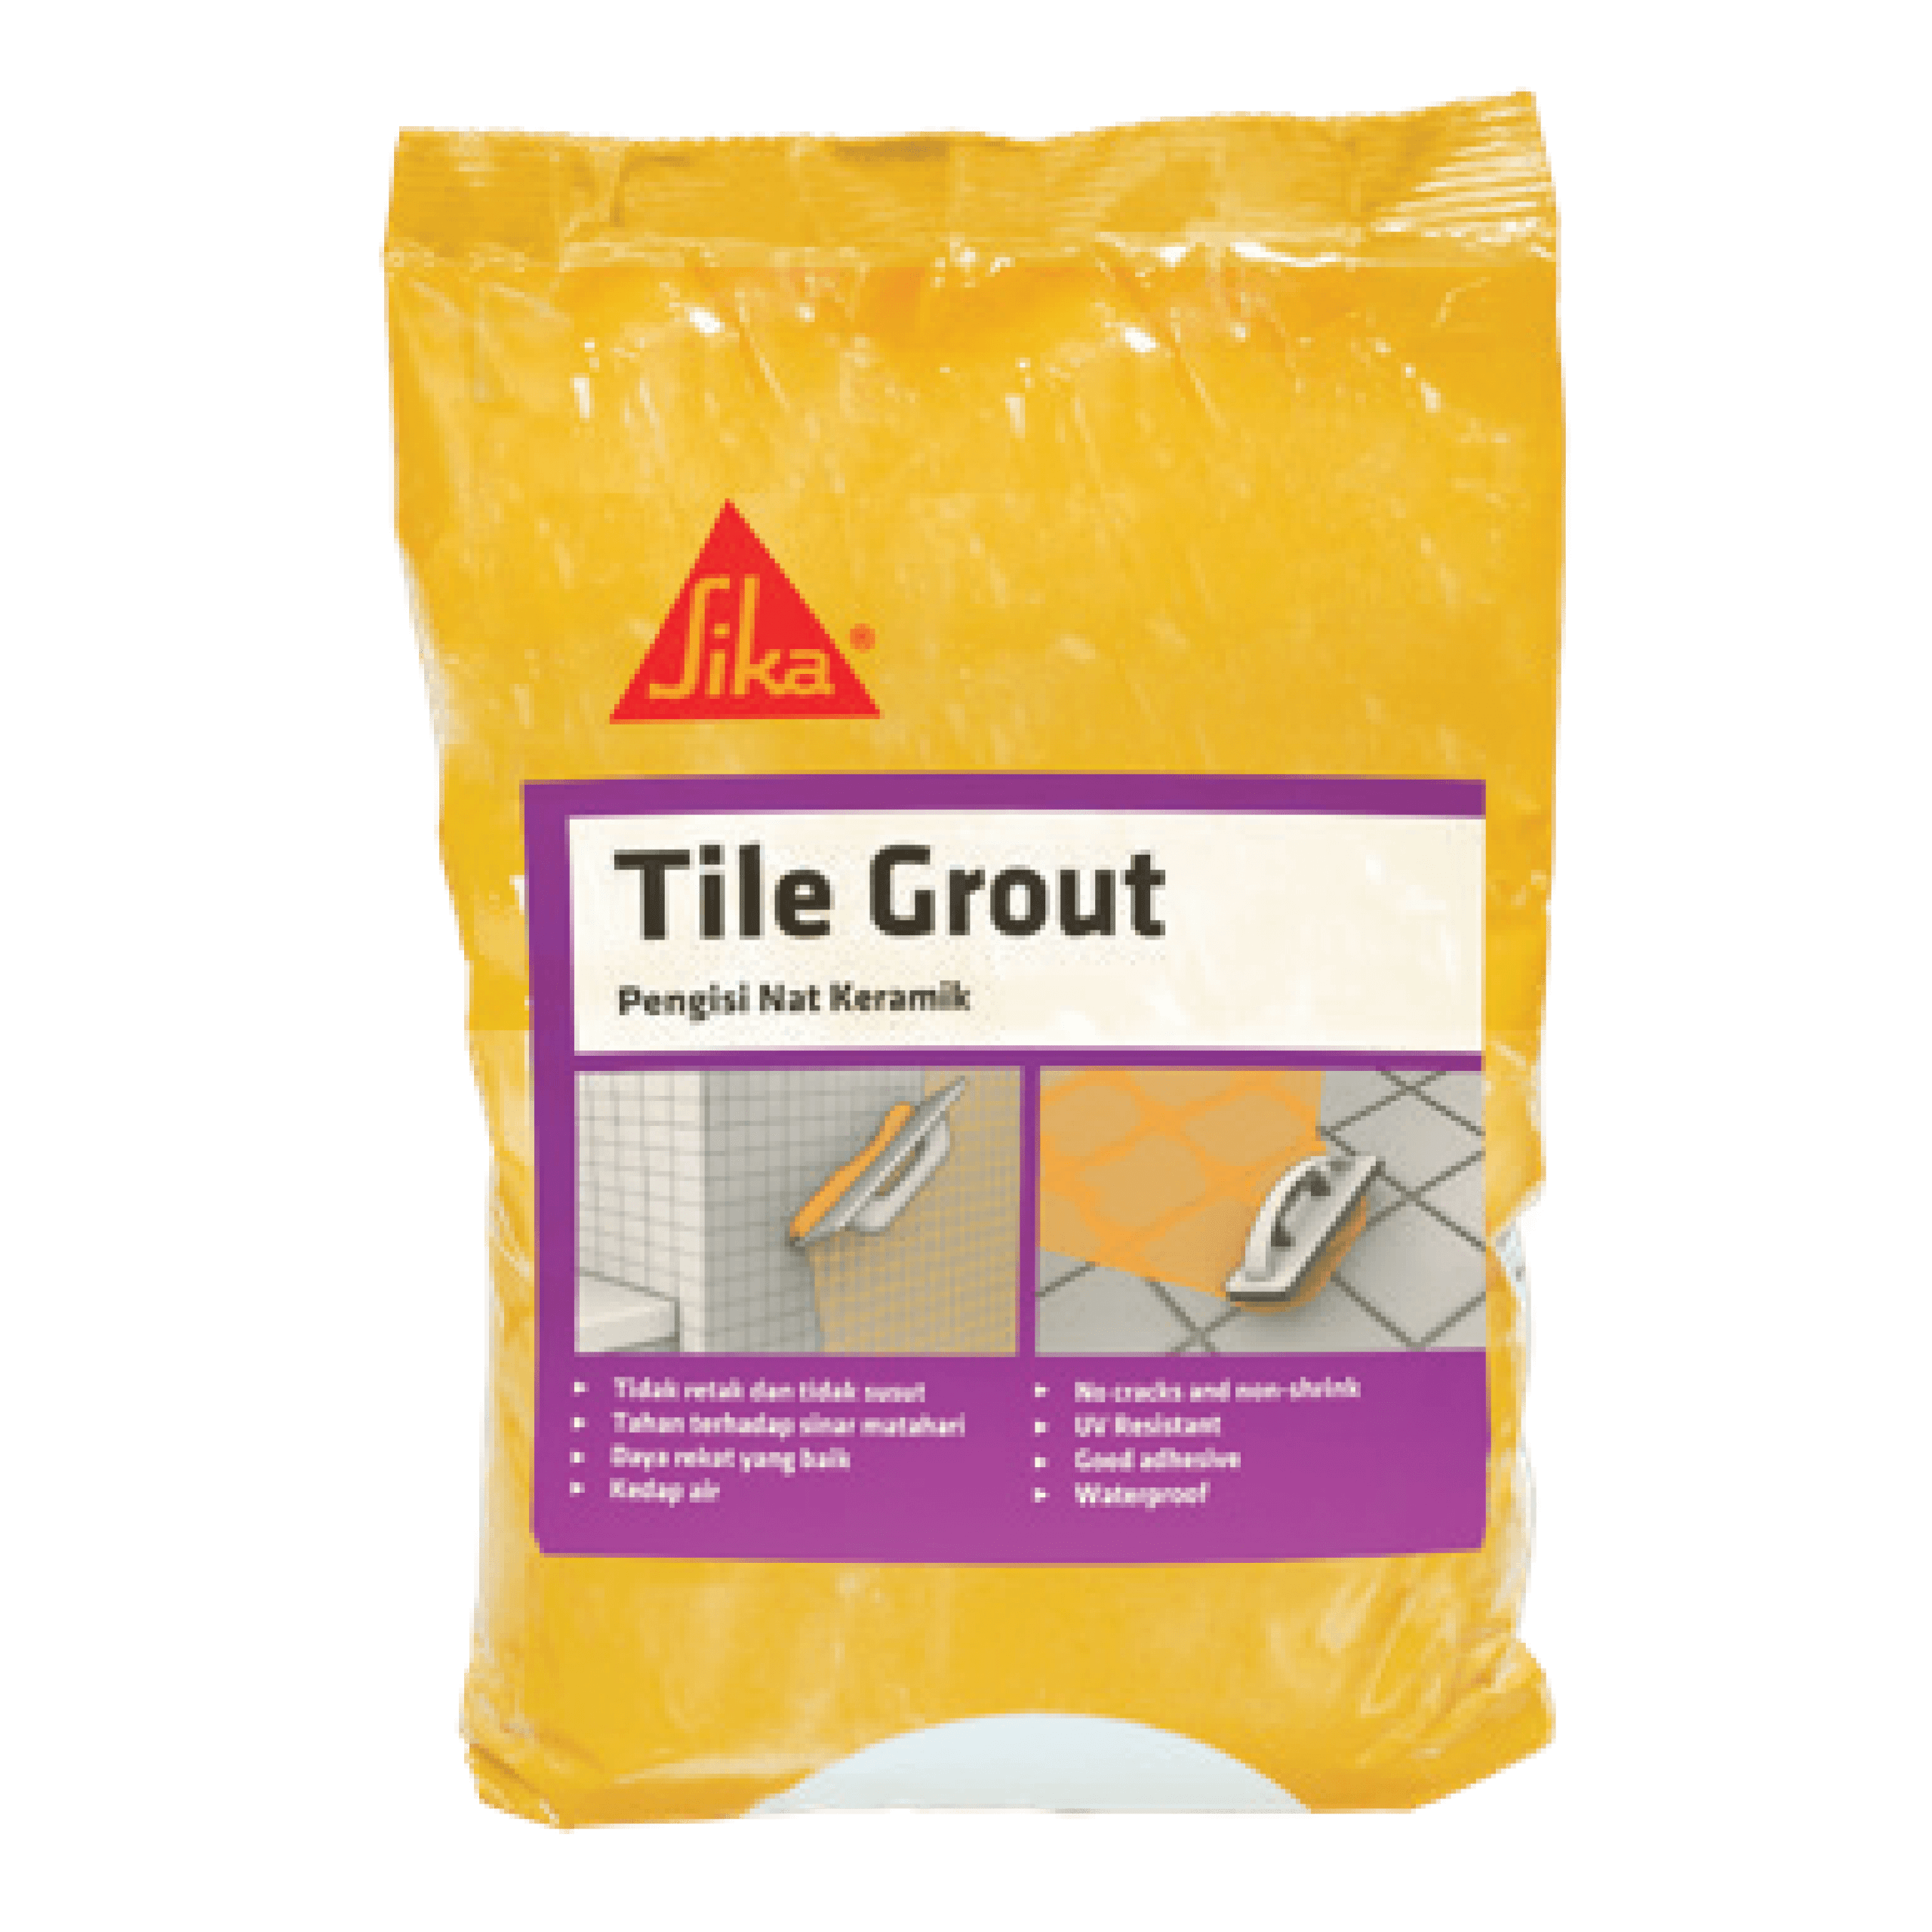 Sika Tile Grout®